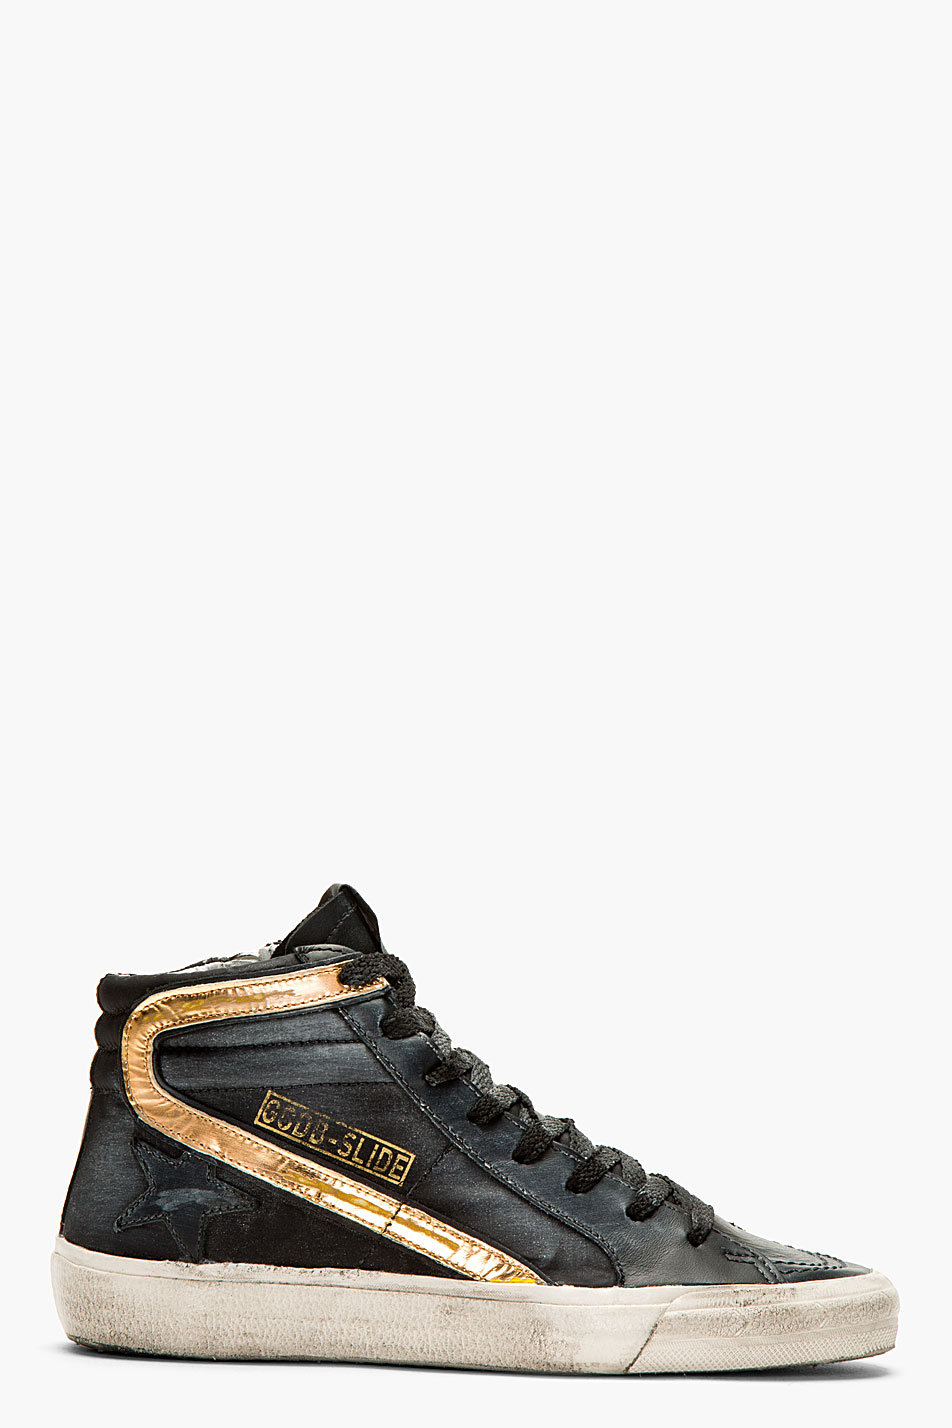 Golden Goose Deluxe Brand Black And Copper Distressed